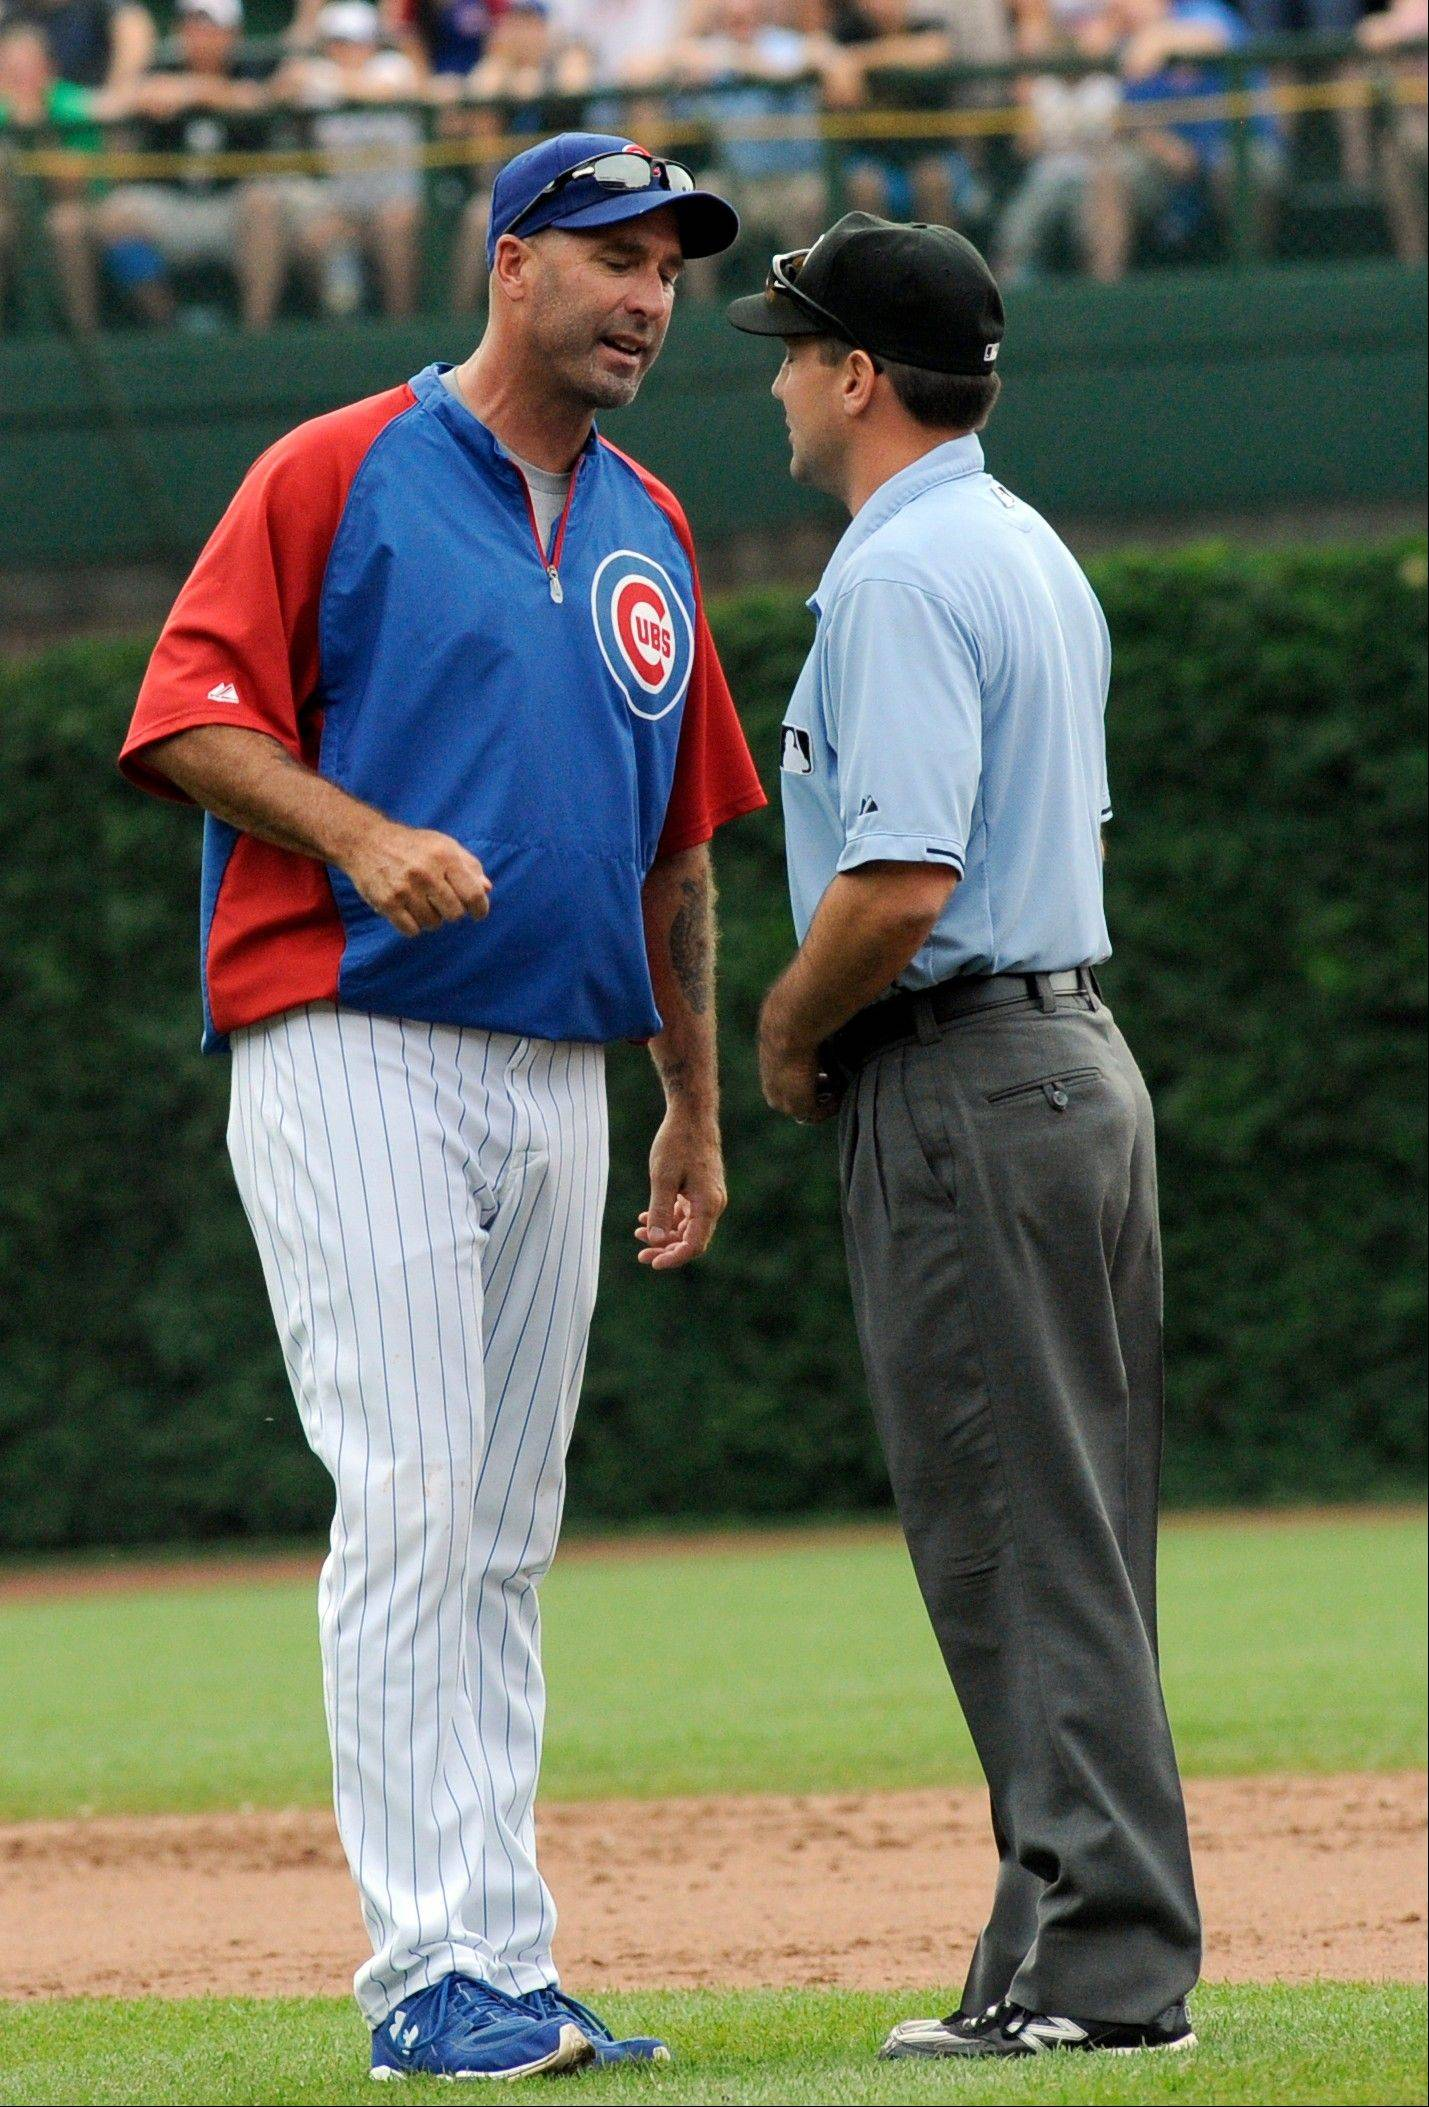 Manager Dale Sveum pleads his case after second-base umpire Clint Fagan called out the Cubs' Alfonso Soriano on a pickoff play in the eighth inning Saturday at Wrigley Field.